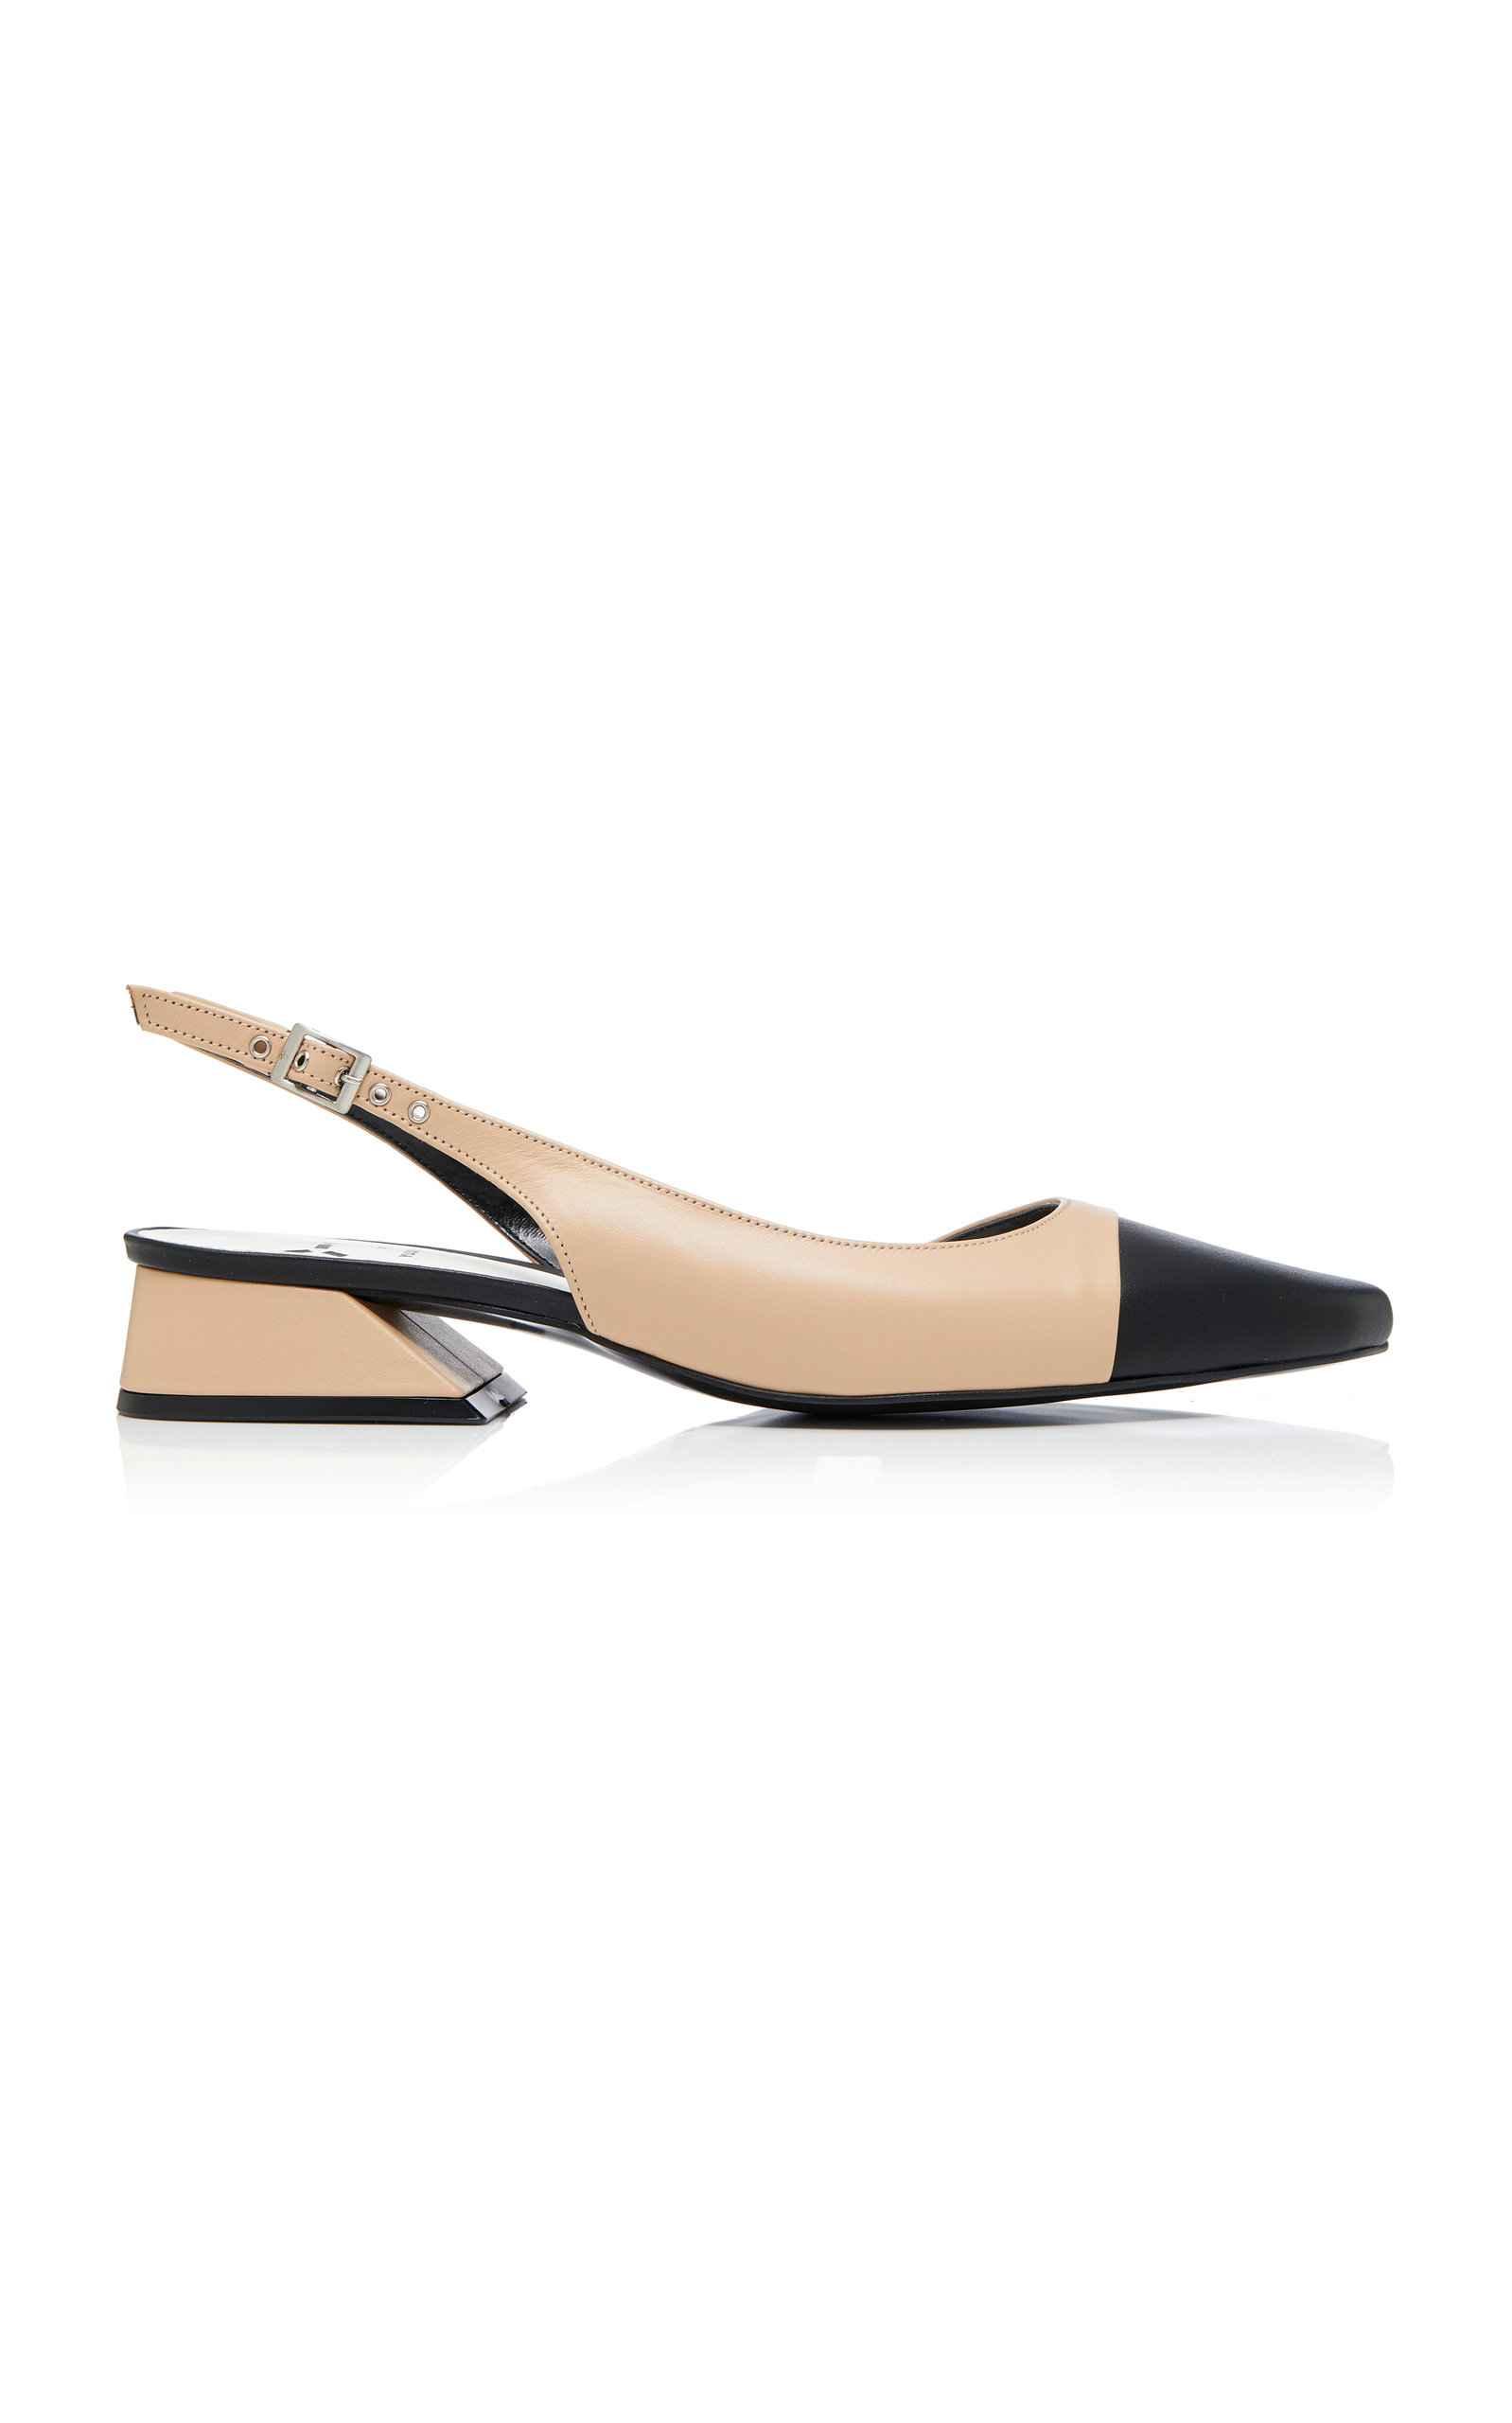 Yuul Yie | Yuul Yie Exclusive Two-Tone Leather Slingback Pumps | Clouty